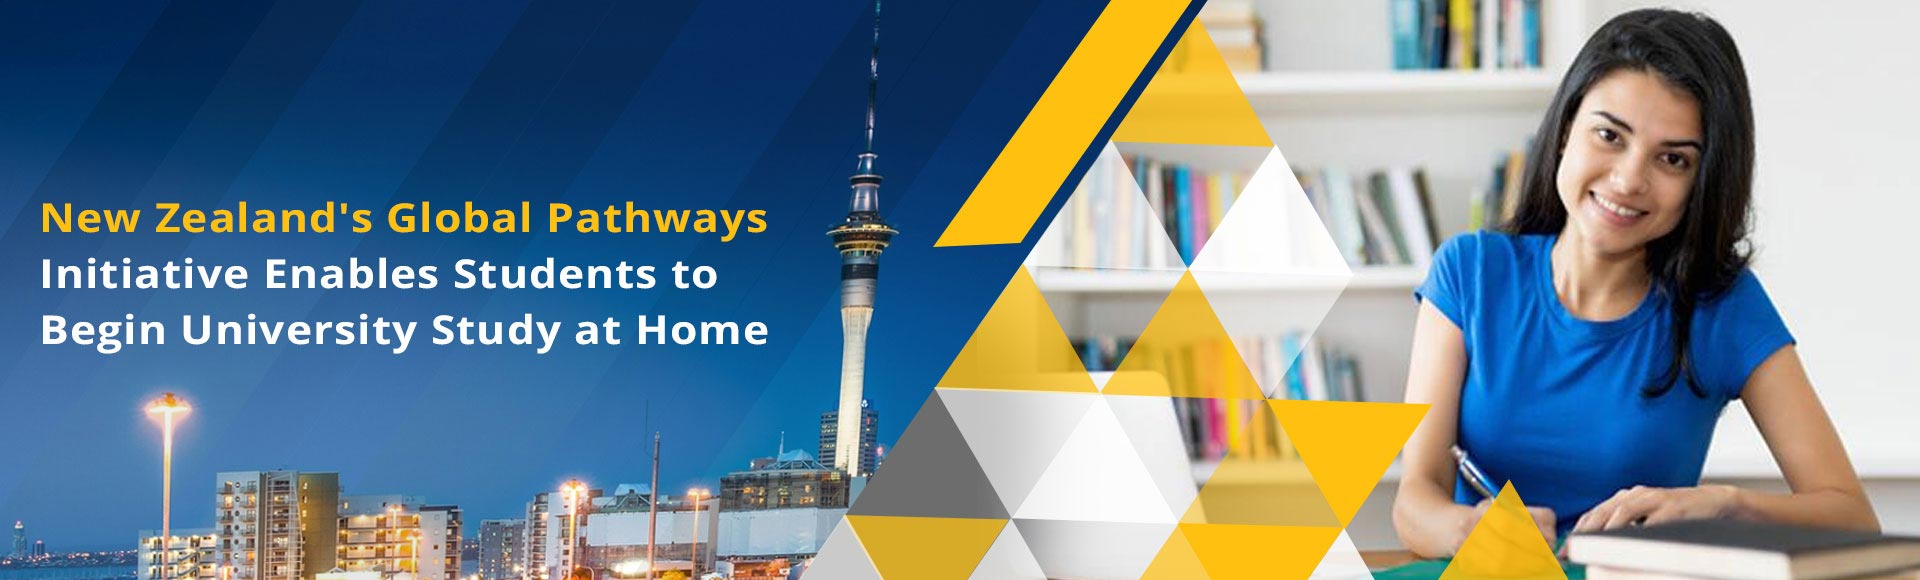 New Zealand's Global Pathways initiative enables students to begin university study at home